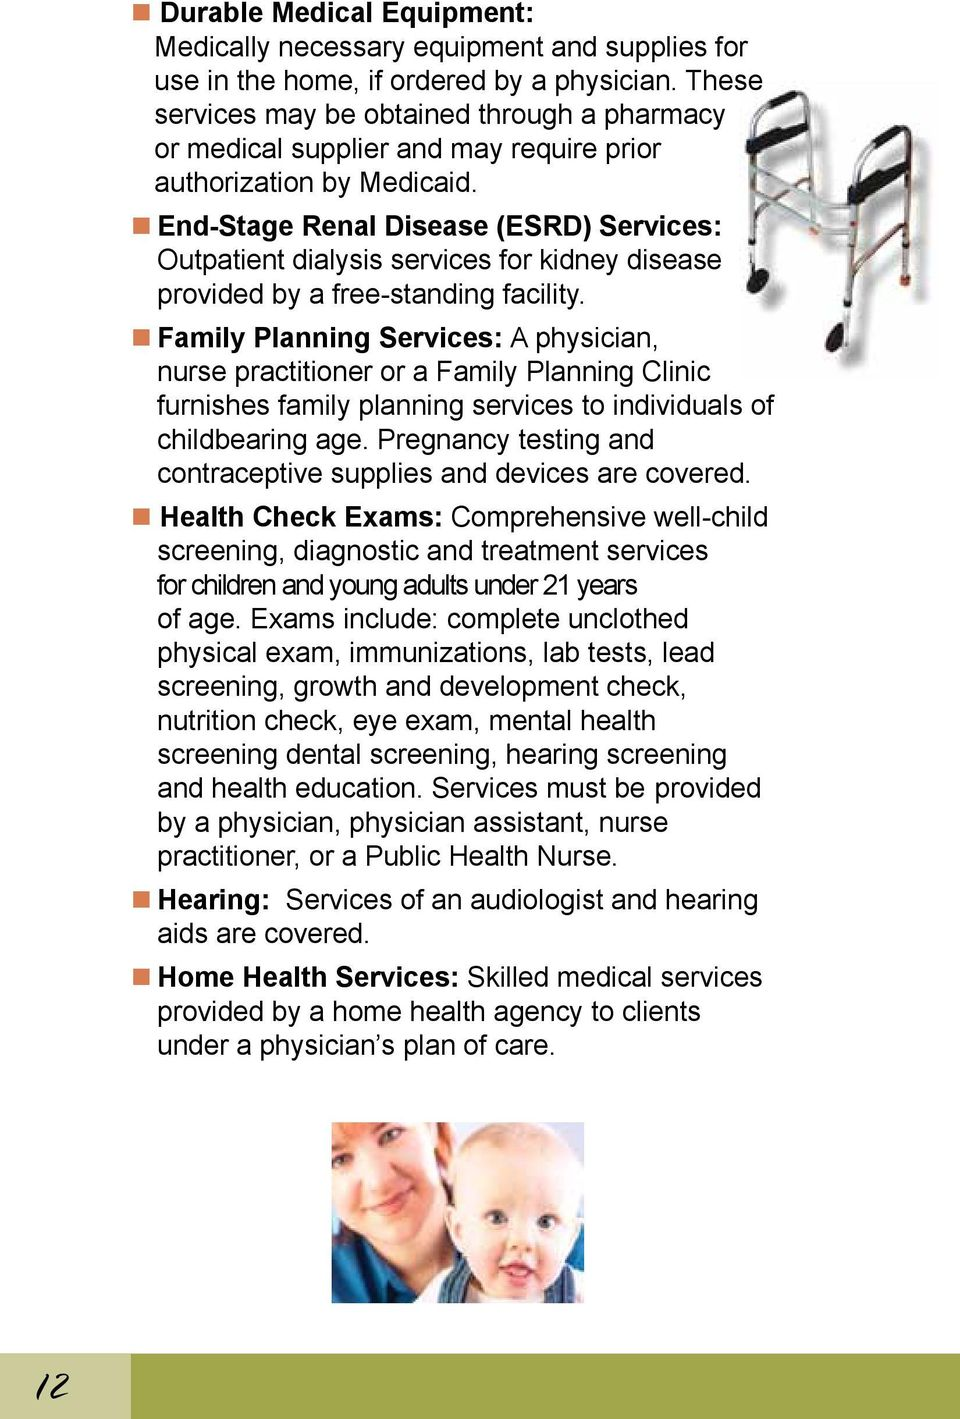 End-Stage Renal Disease (ESRD) Services: Outpatient dialysis services for kidney disease provided by a free-standing facility.